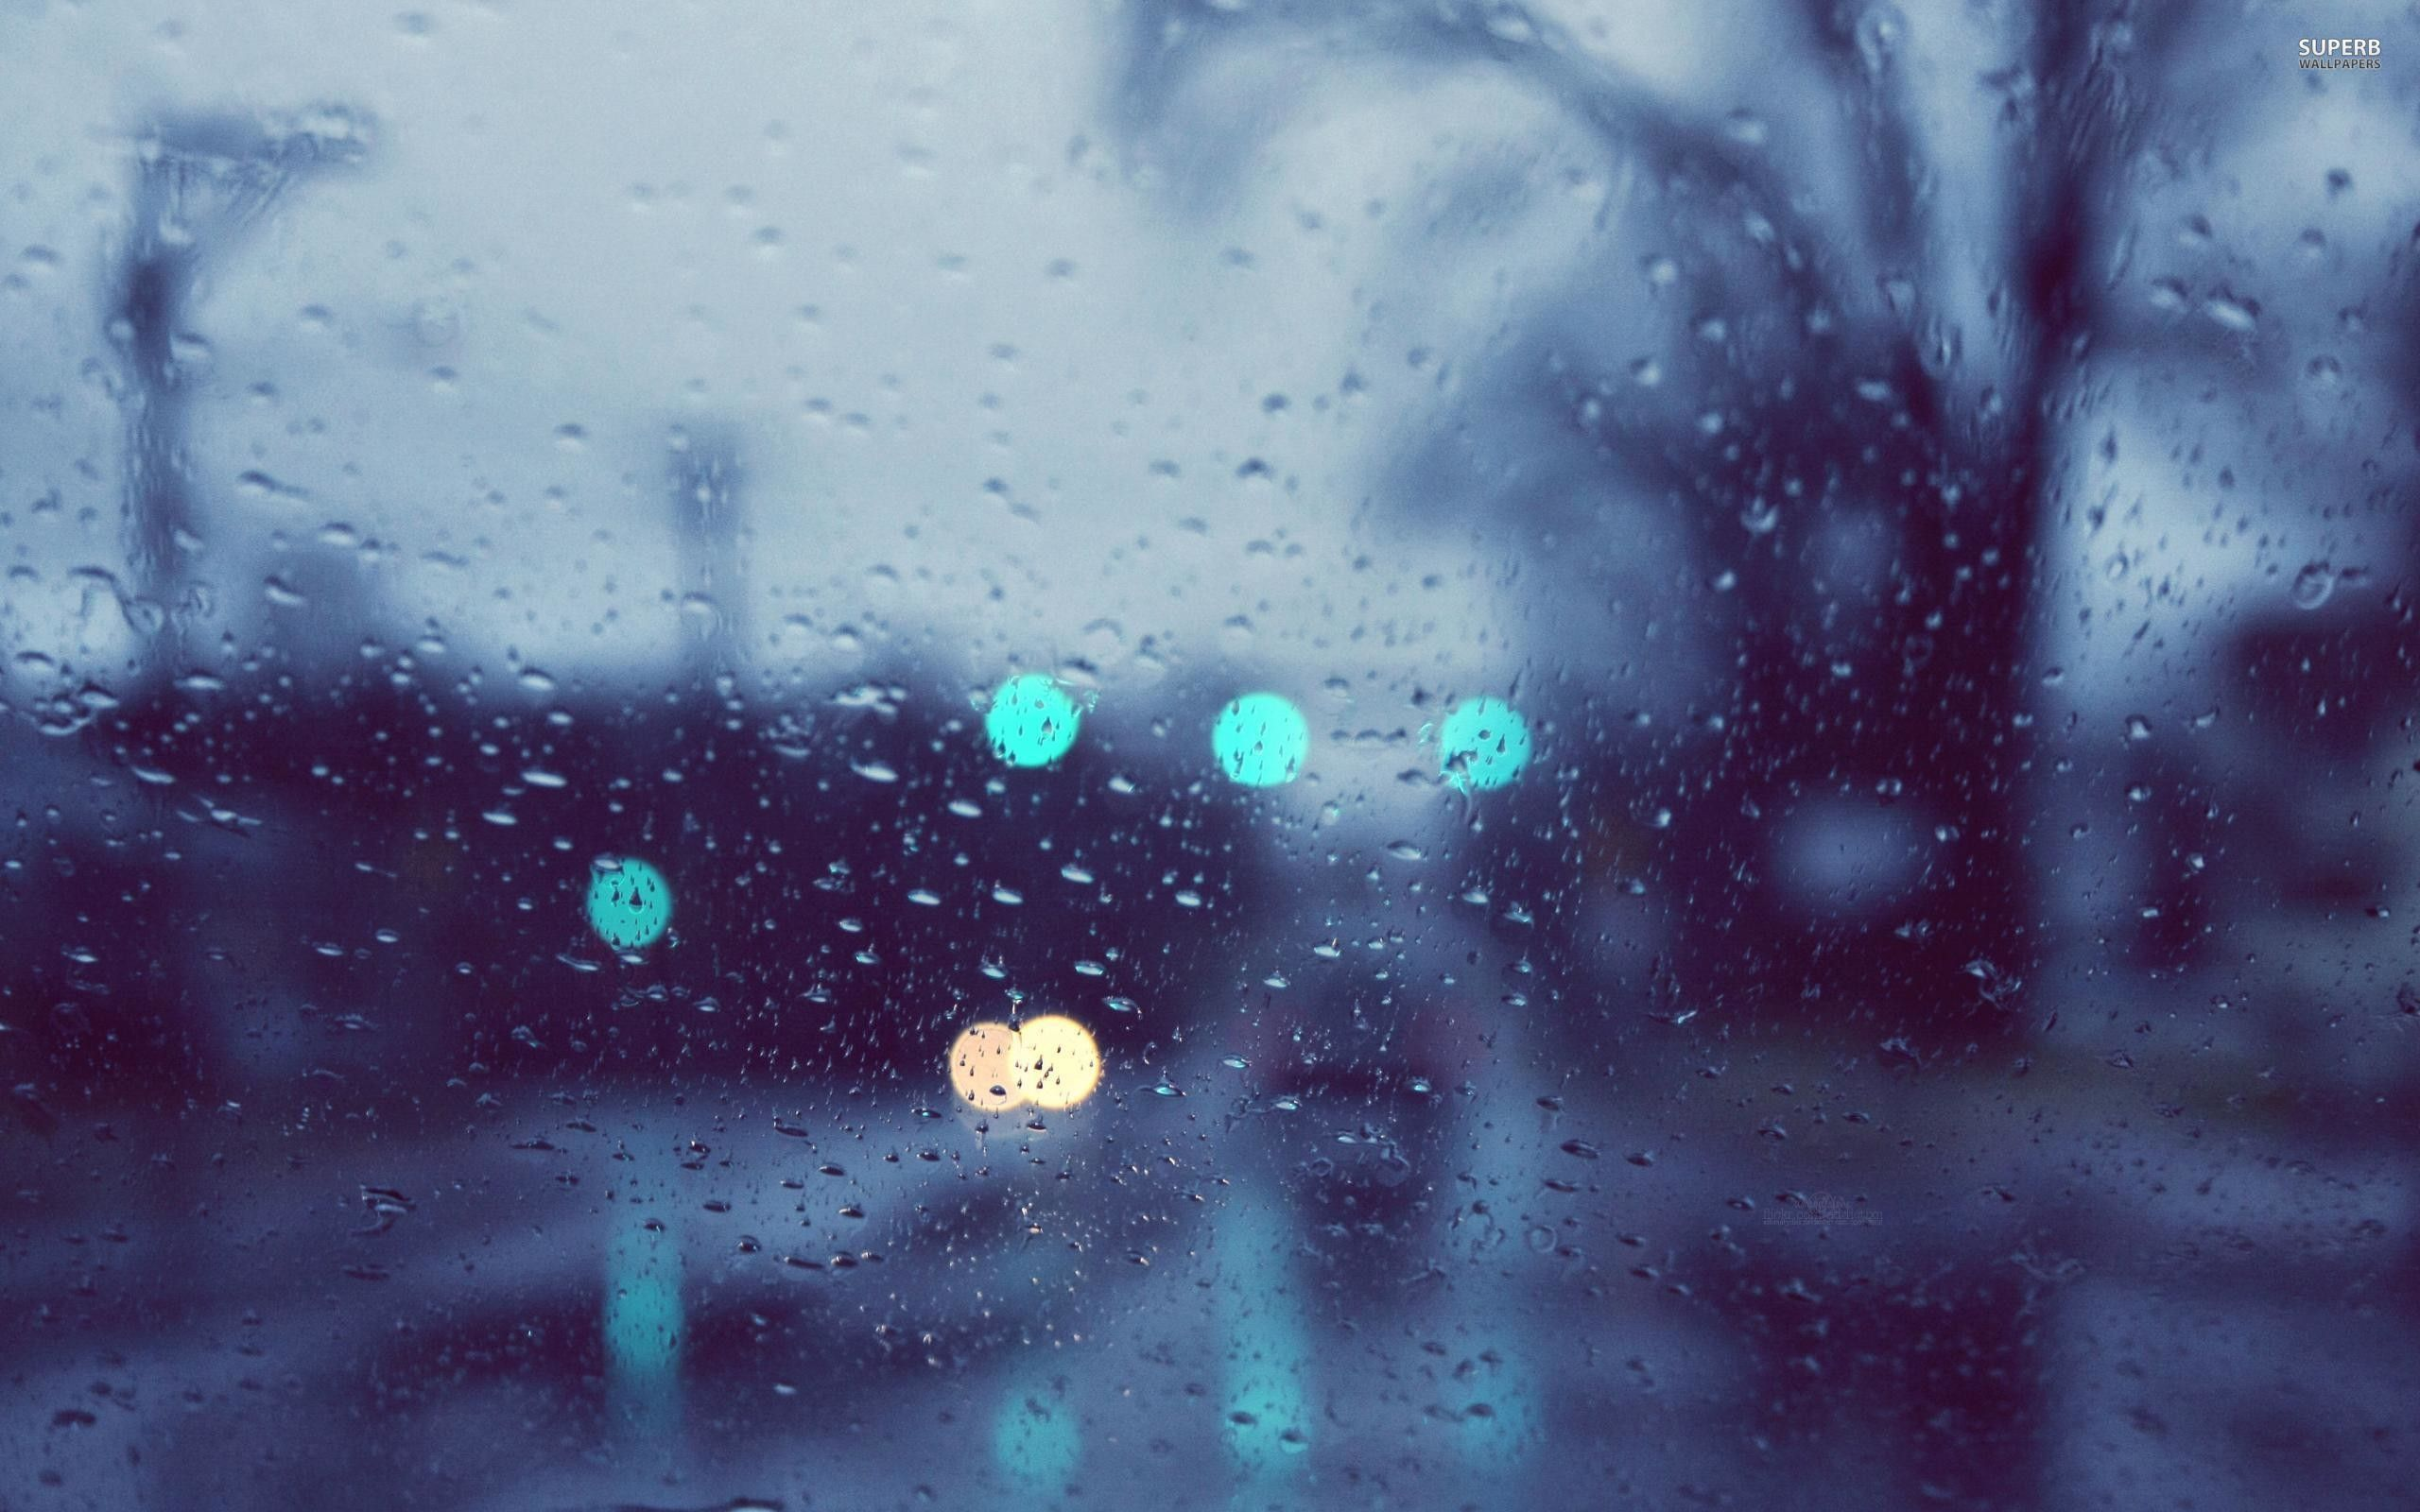 Aesthetic Rain Wallpapers   Top Aesthetic Rain Backgrounds 2560x1600